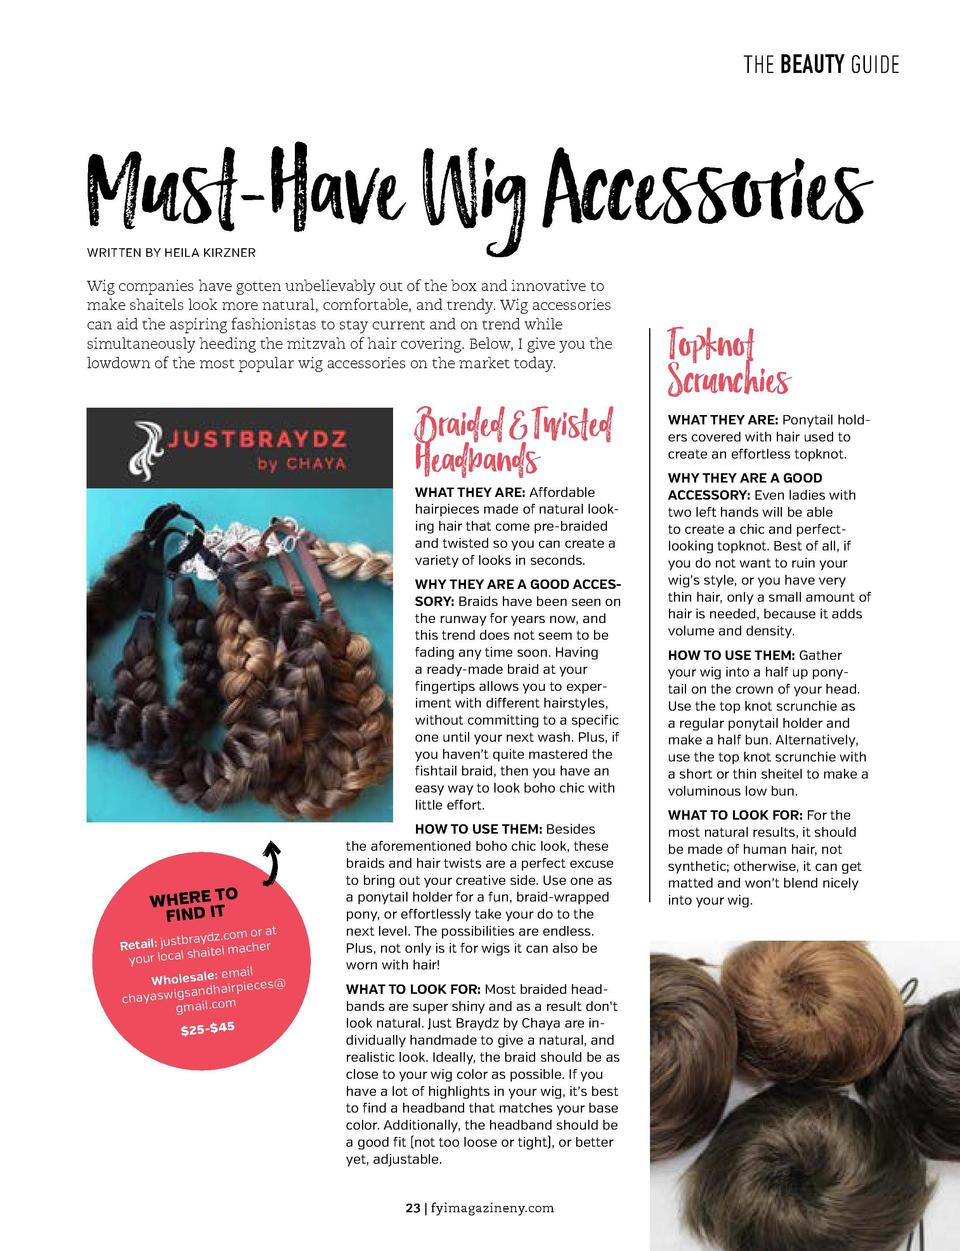 THE BEAUTY GUIDE  THE BEAUTY GUIDE  Must-Have Wig Accessories  Bags  WRITTEN BY HEILA KIRZNER  Wig companies have gotten u...